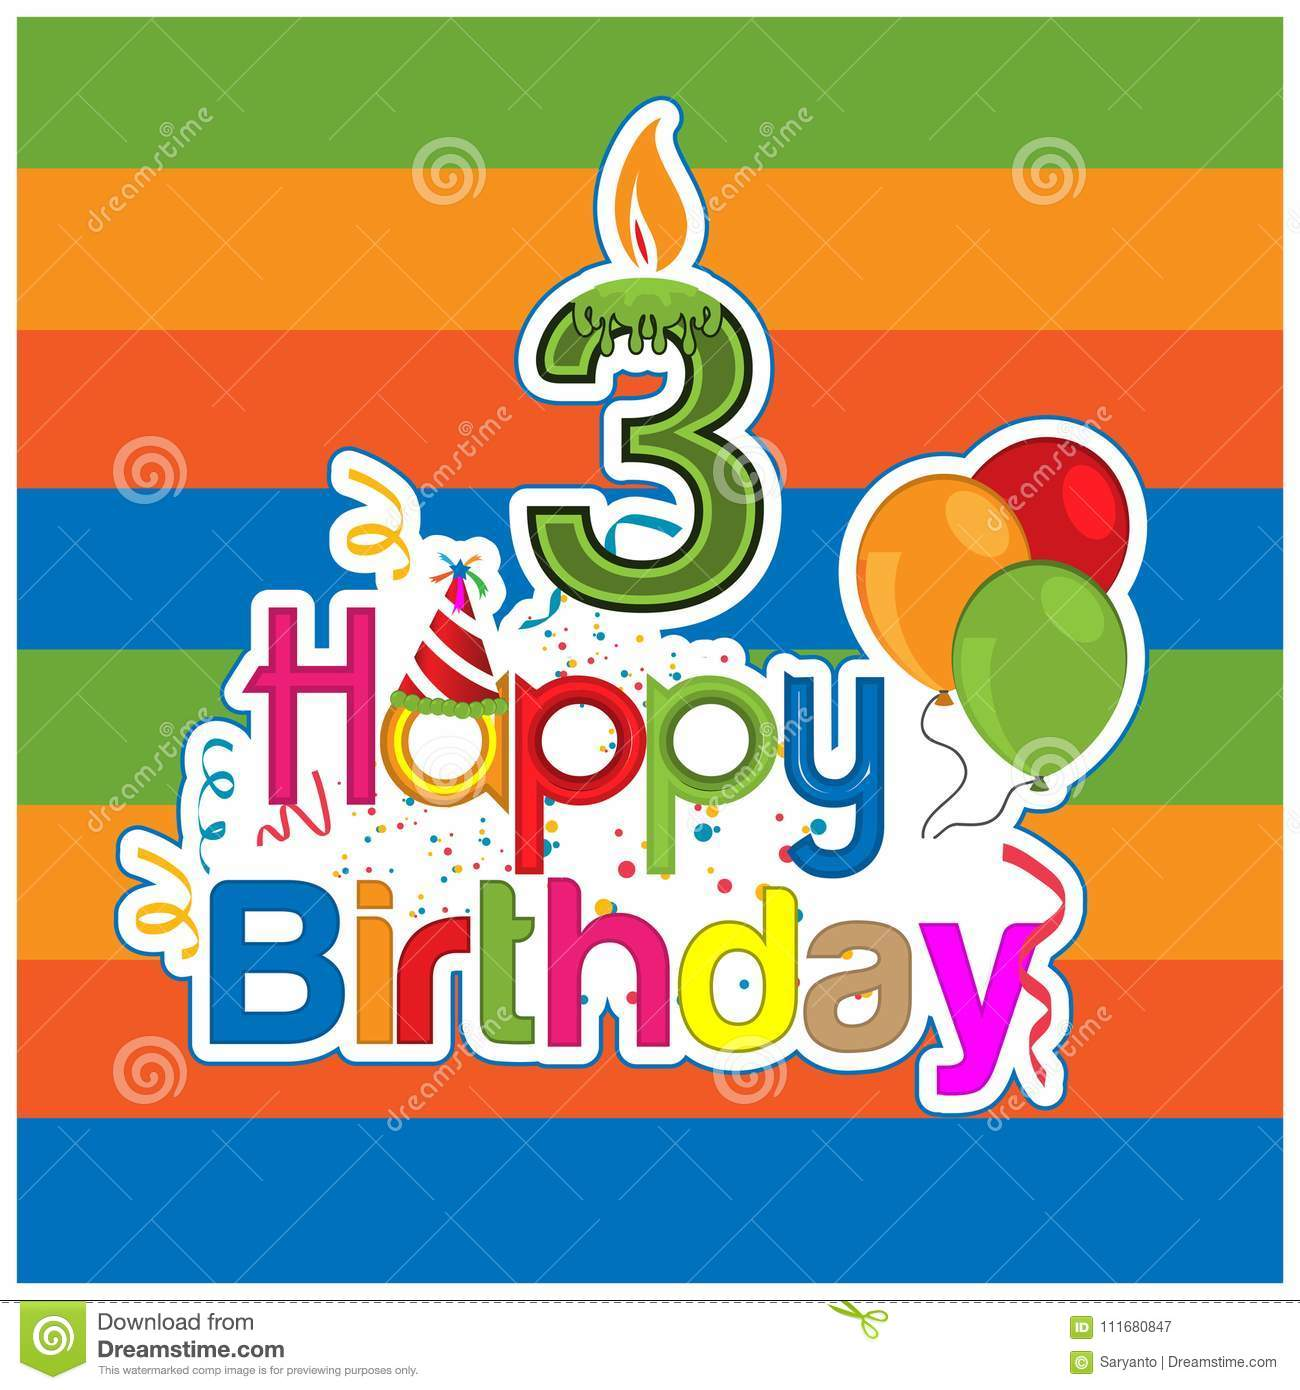 Happy Birthday Vector Design With Number Three For A Year Old Child Banner Sticker Greeting Cards And Background EPS File Available See More